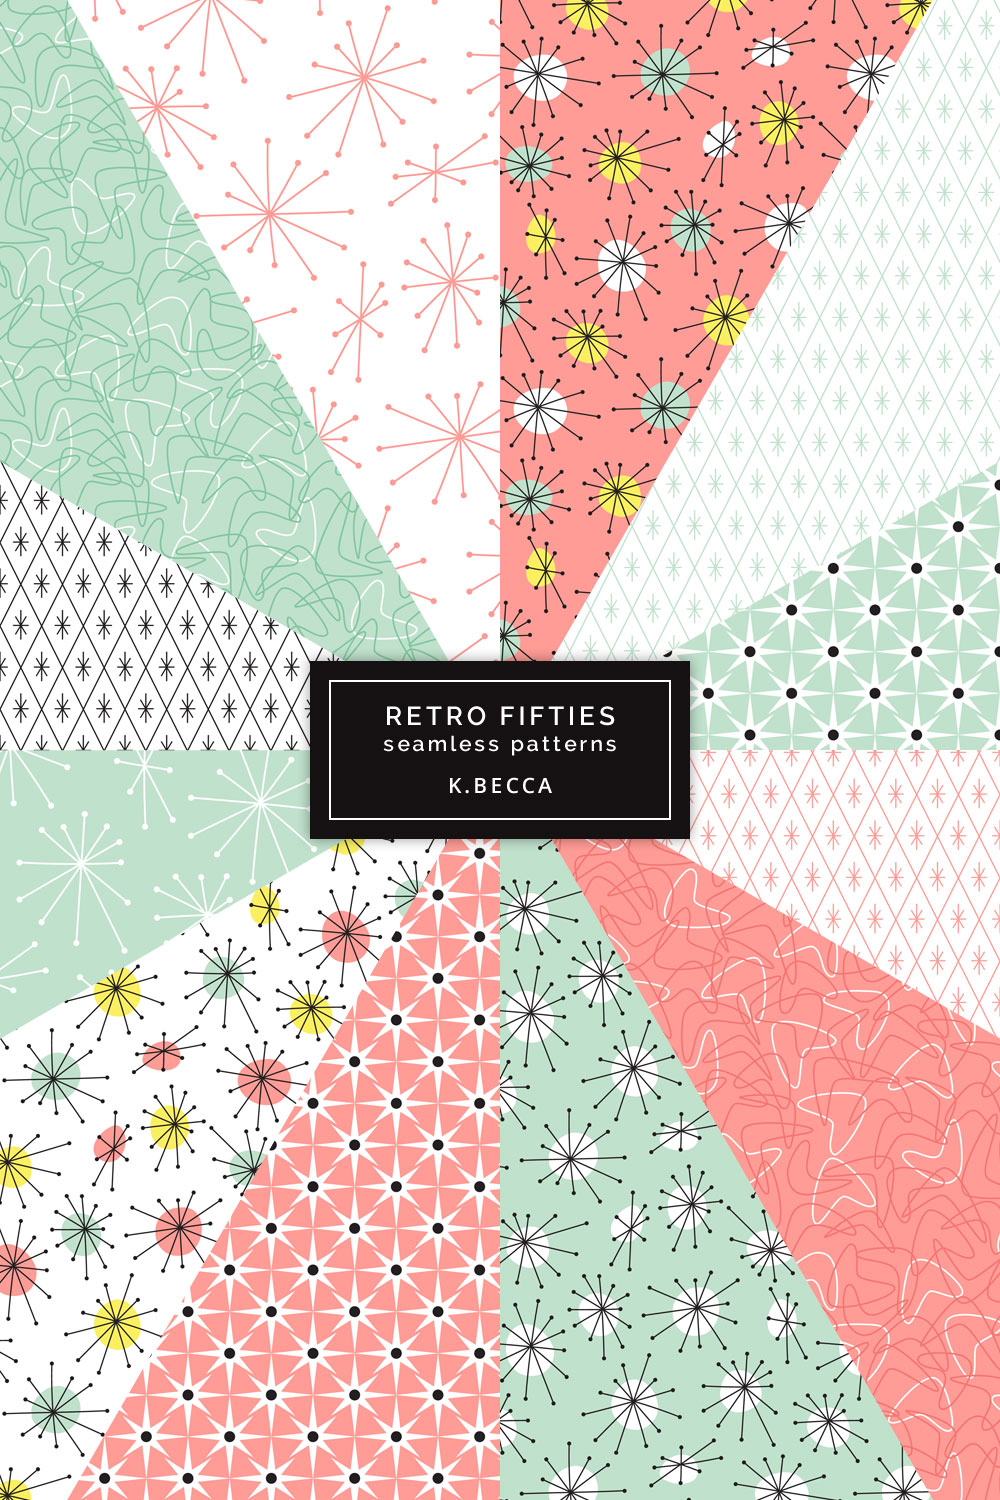 Retro 1950s Background Patterns Seamless example image 8